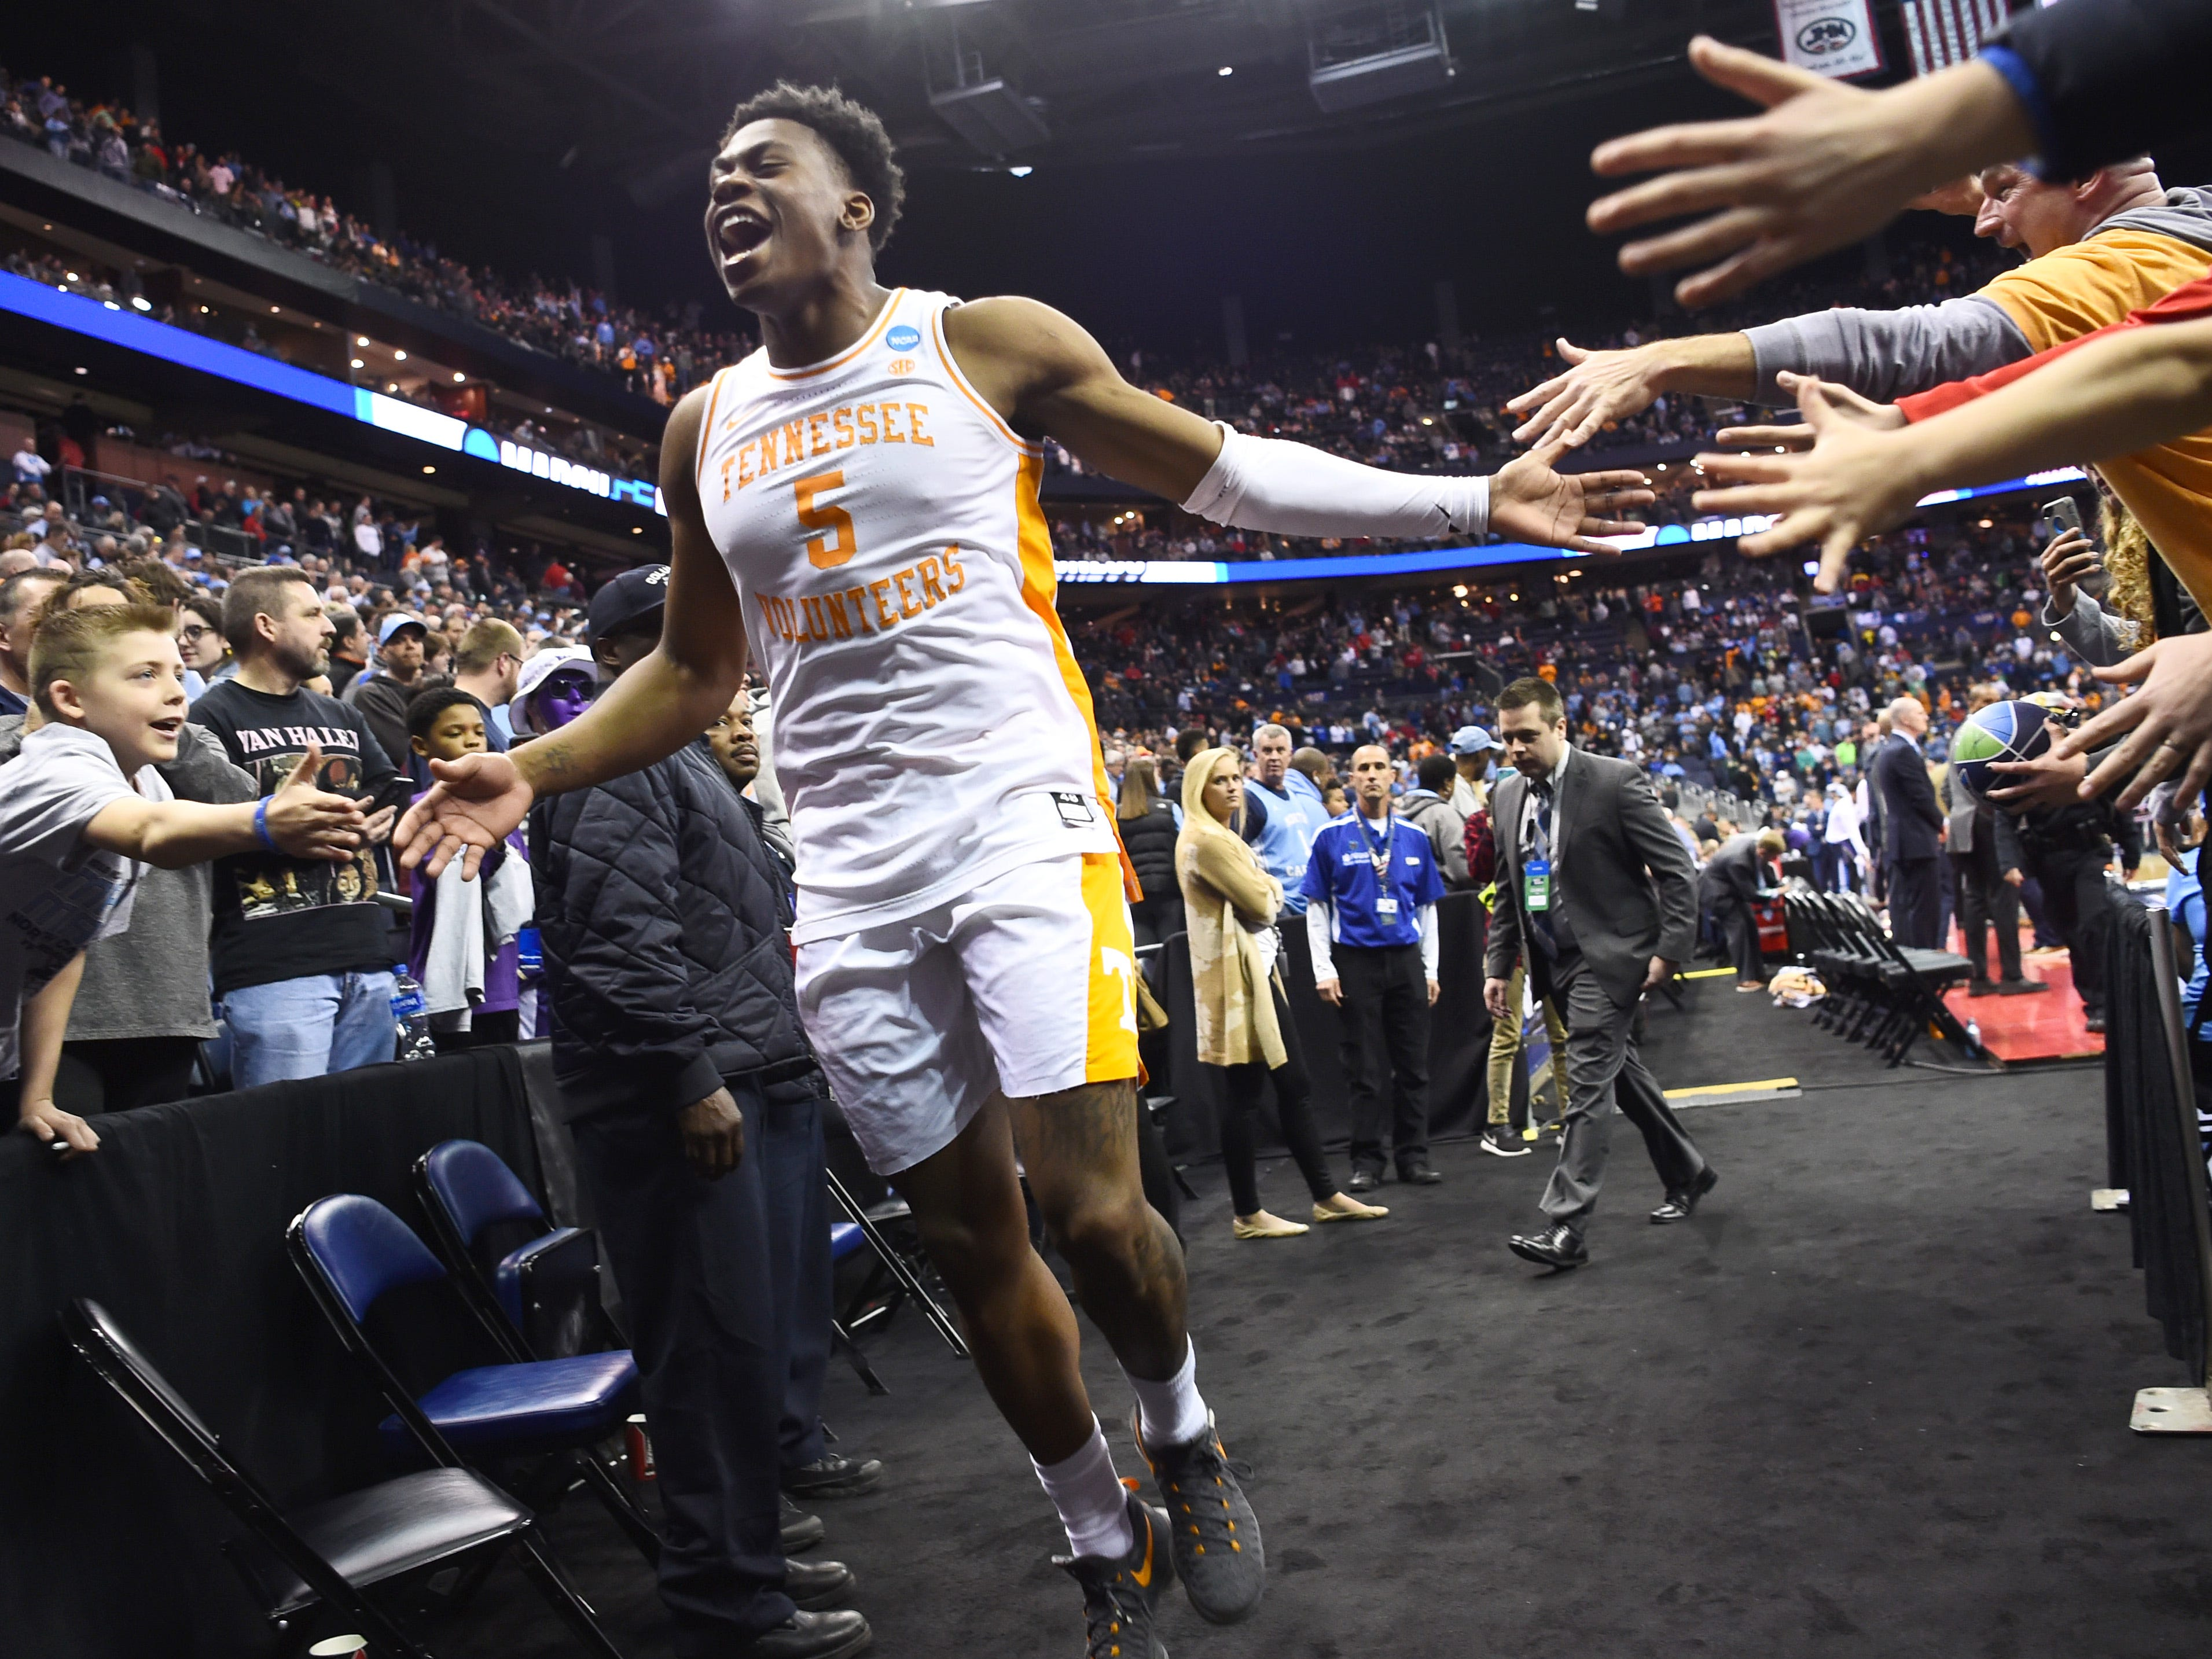 No. 2 UT plays No. 3 Purdue on Thursday, March 28; Here, Tennessee guard Admiral Schofield (5) celebrates the overtime win over the Iowa Hawkeyes in the second round of the NCAA Tournament at Nationwide Arena in Columbus, Ohio, Sunday, March 24, 2019.